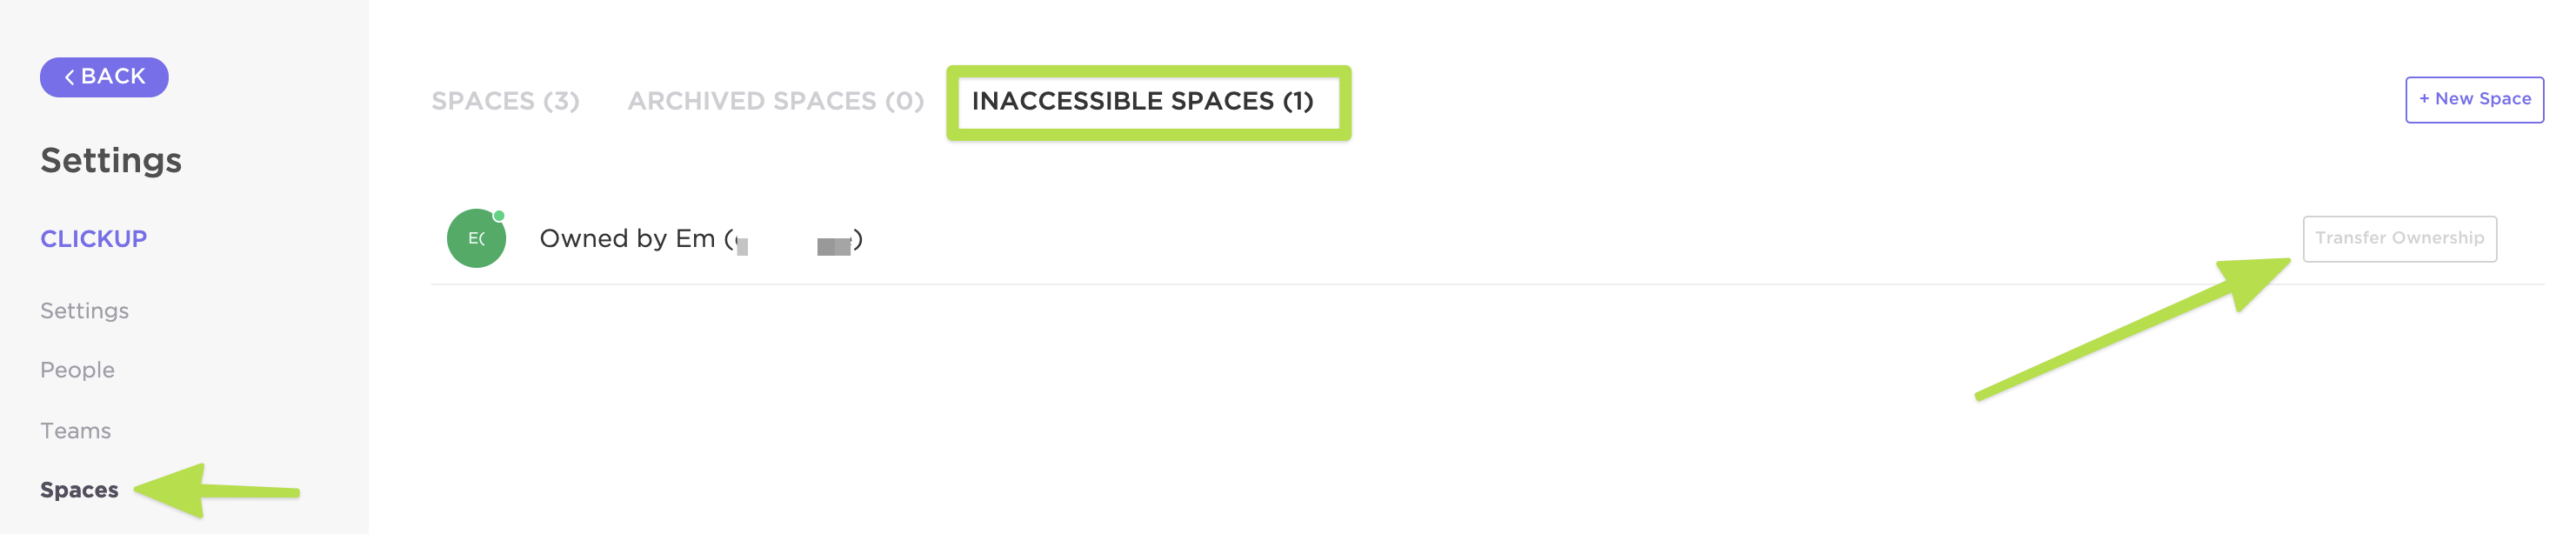 How to view inaccessible spaces in the Settings of your Workspace